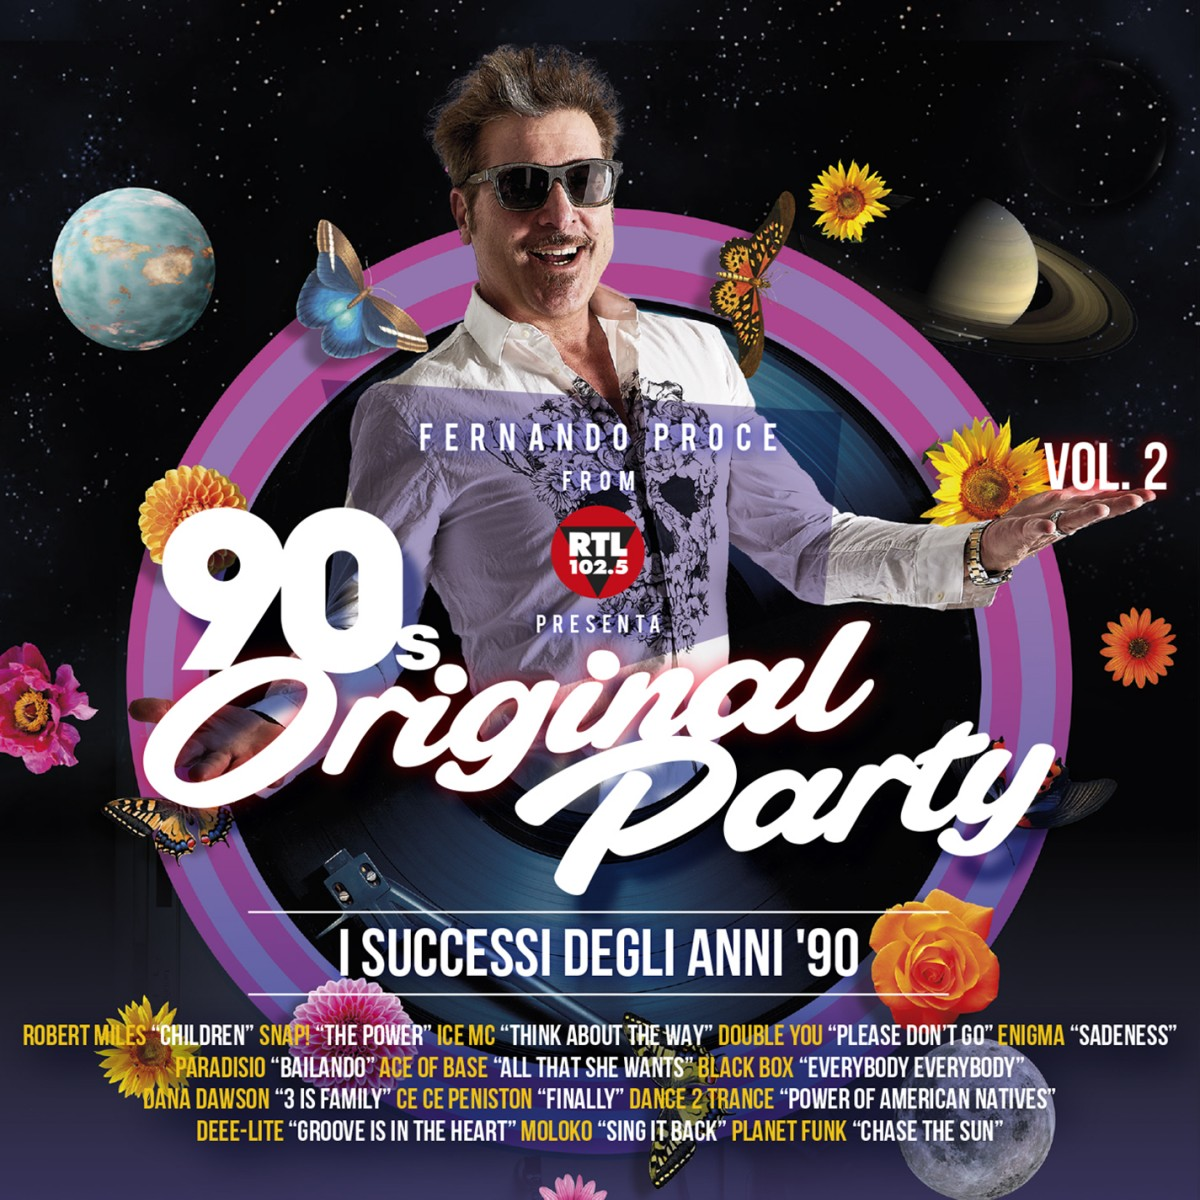 FERNANDO PROCE PRESENTA 90s ORIGINAL PARTY VOL.2